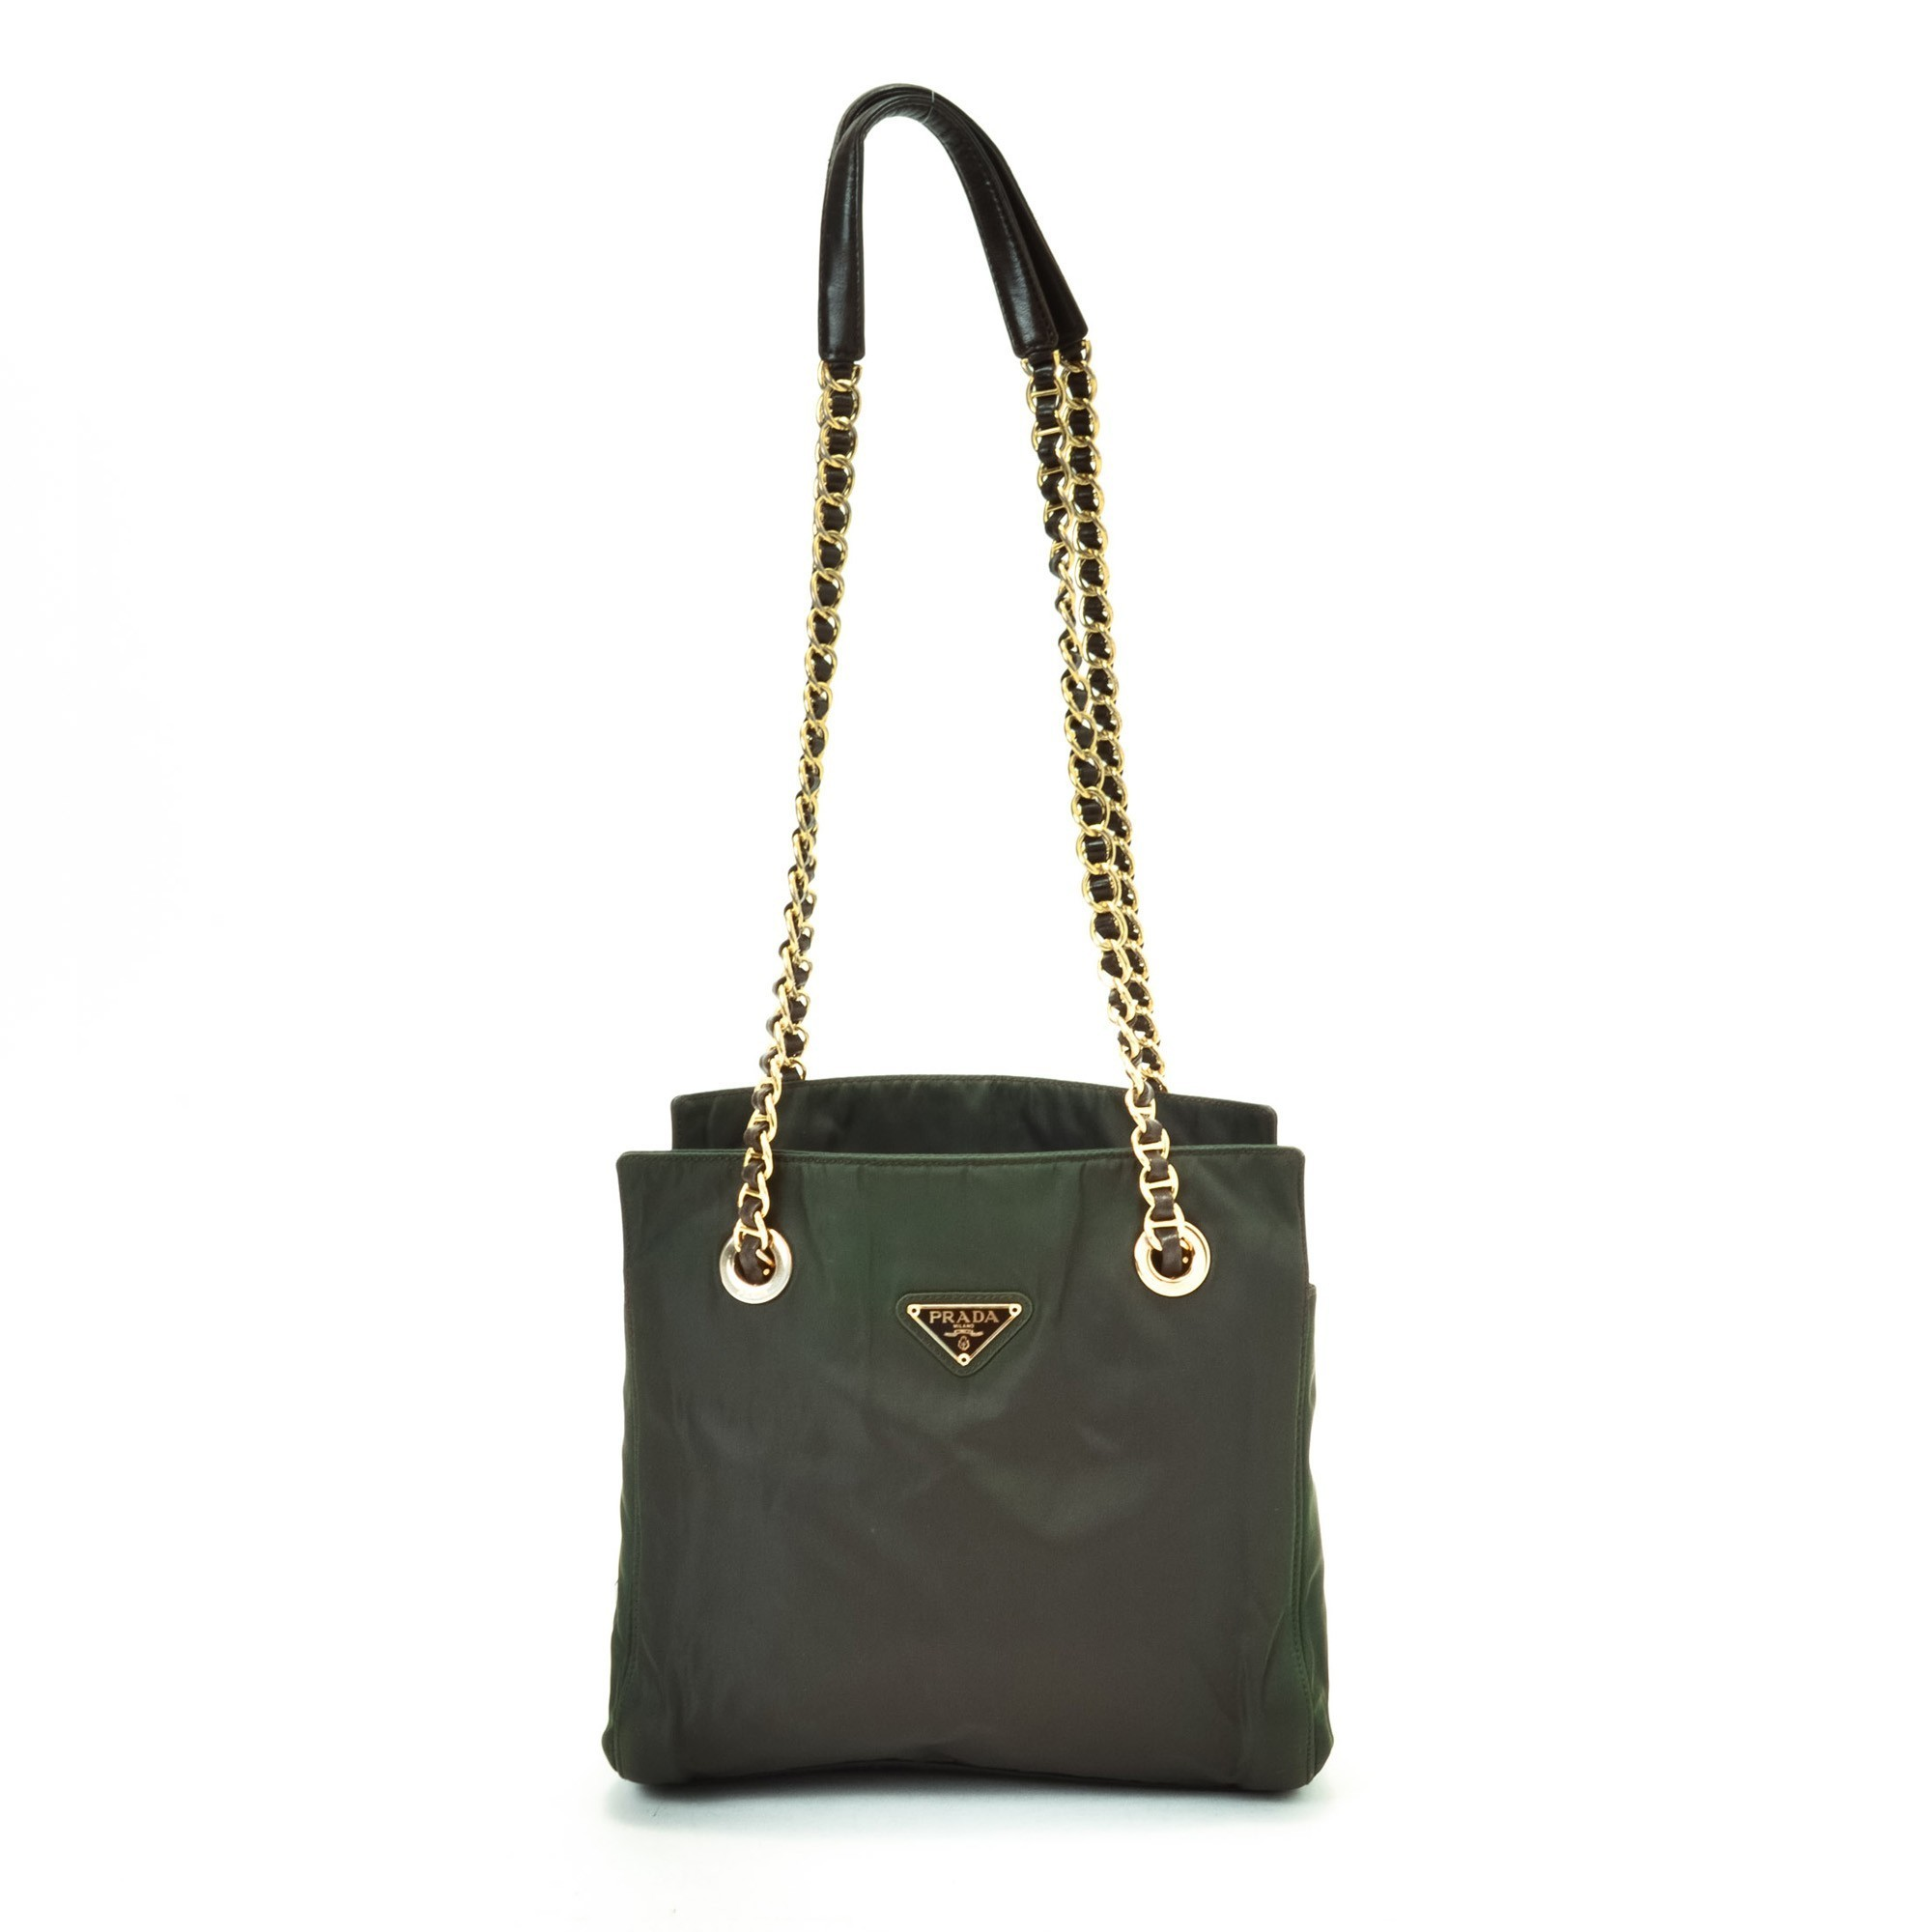 Prada Tessuto Chain Shoulder Bag Khaki Nylon Shoulder Bag - LXR\u0026amp;CO ...